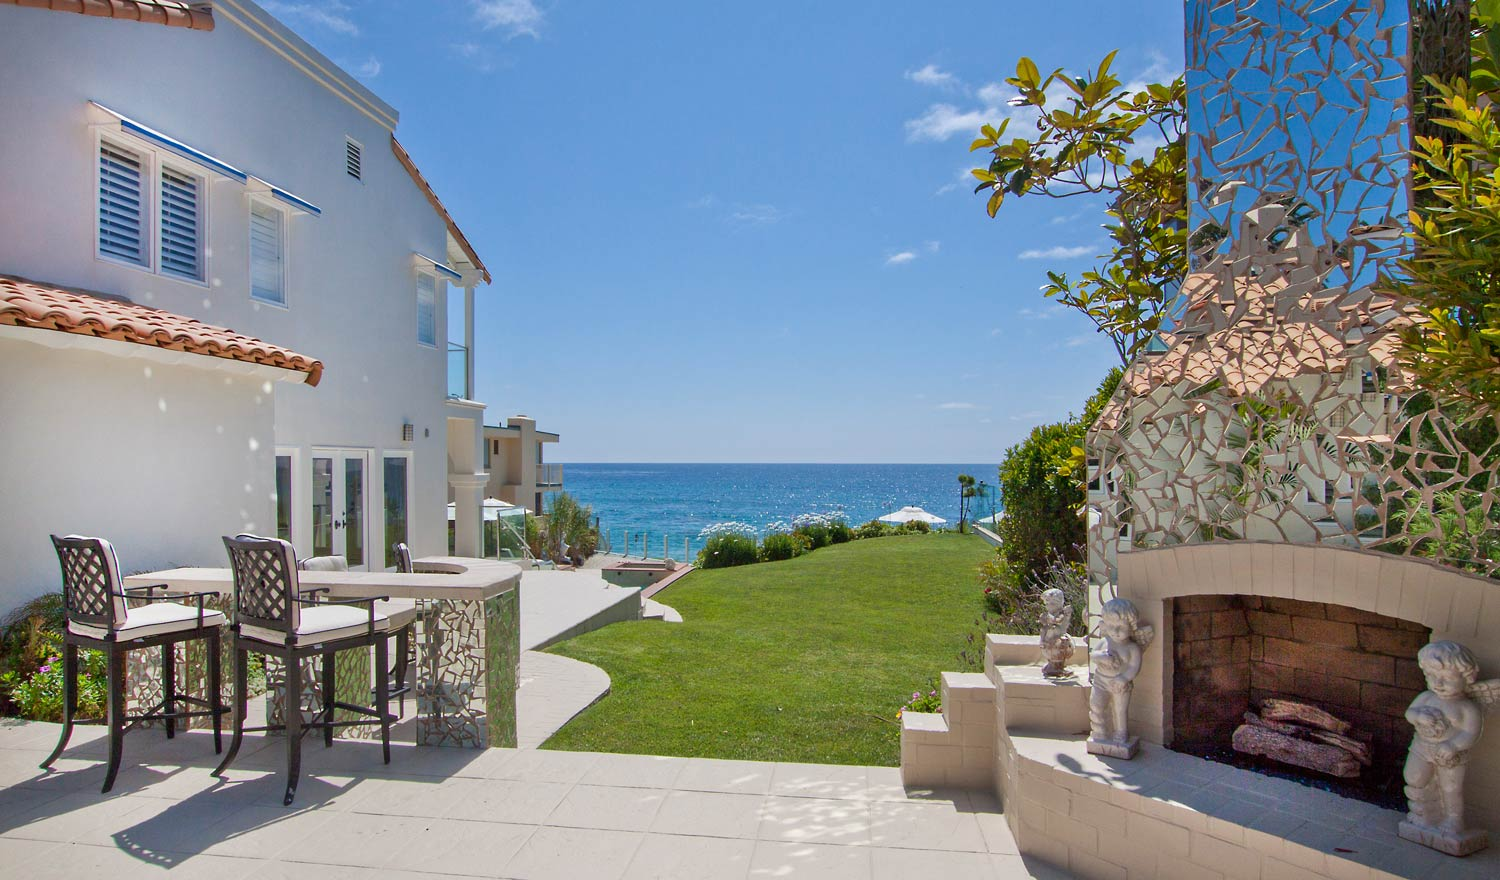 7310 Vista Del Mar is offered at $10,900,000 by Shannon Hagan of Coldwell Banker Residential Brokerage Del Mar.